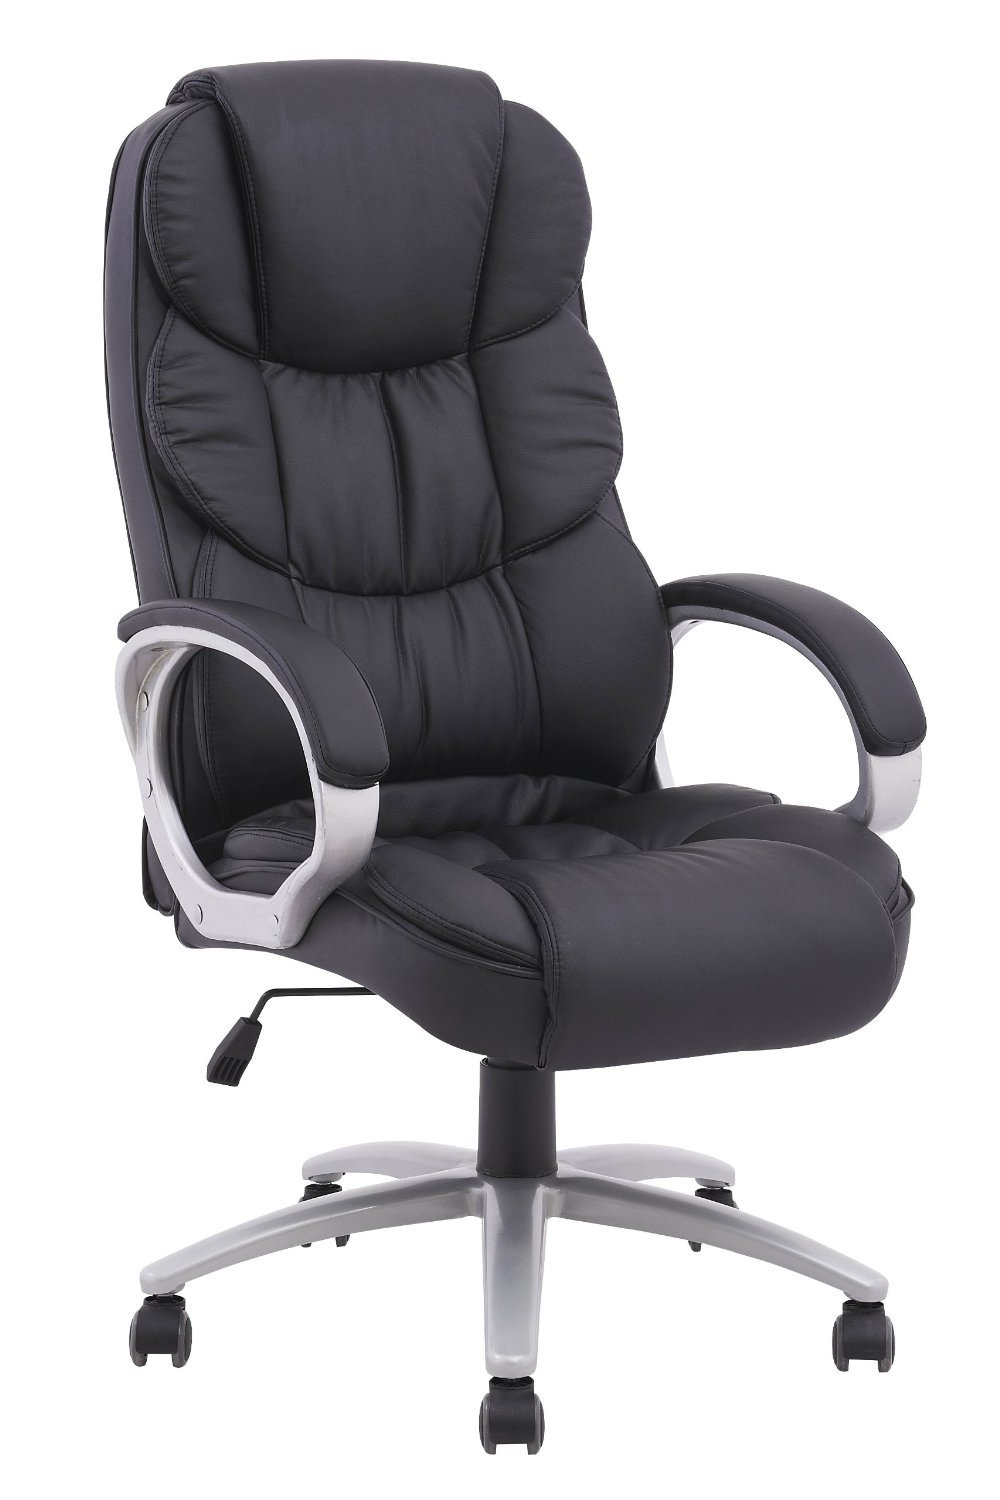 amazoncom bestoffice ergonomic pu leather high back office chair black kitchen dining amazon chairs office